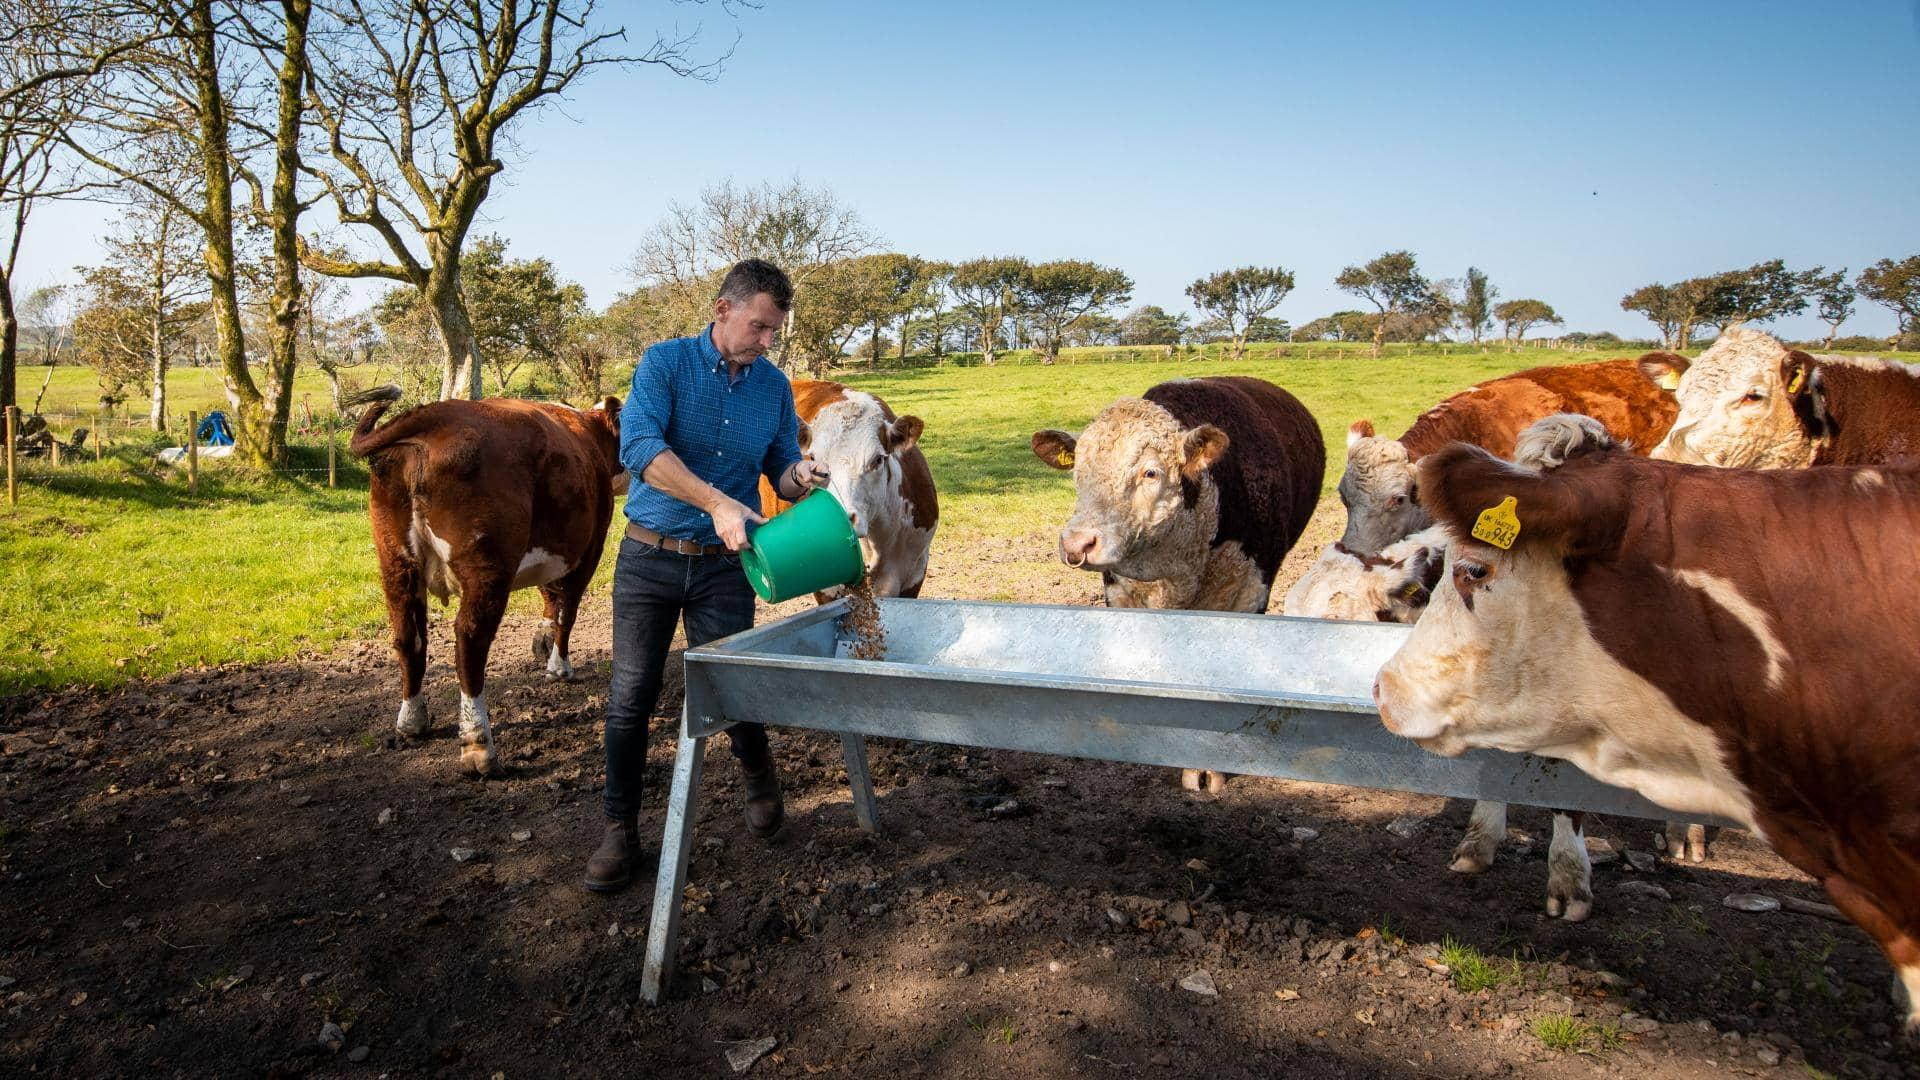 NIgel Owens MBE, Sustainabilty Through Agri-Tech